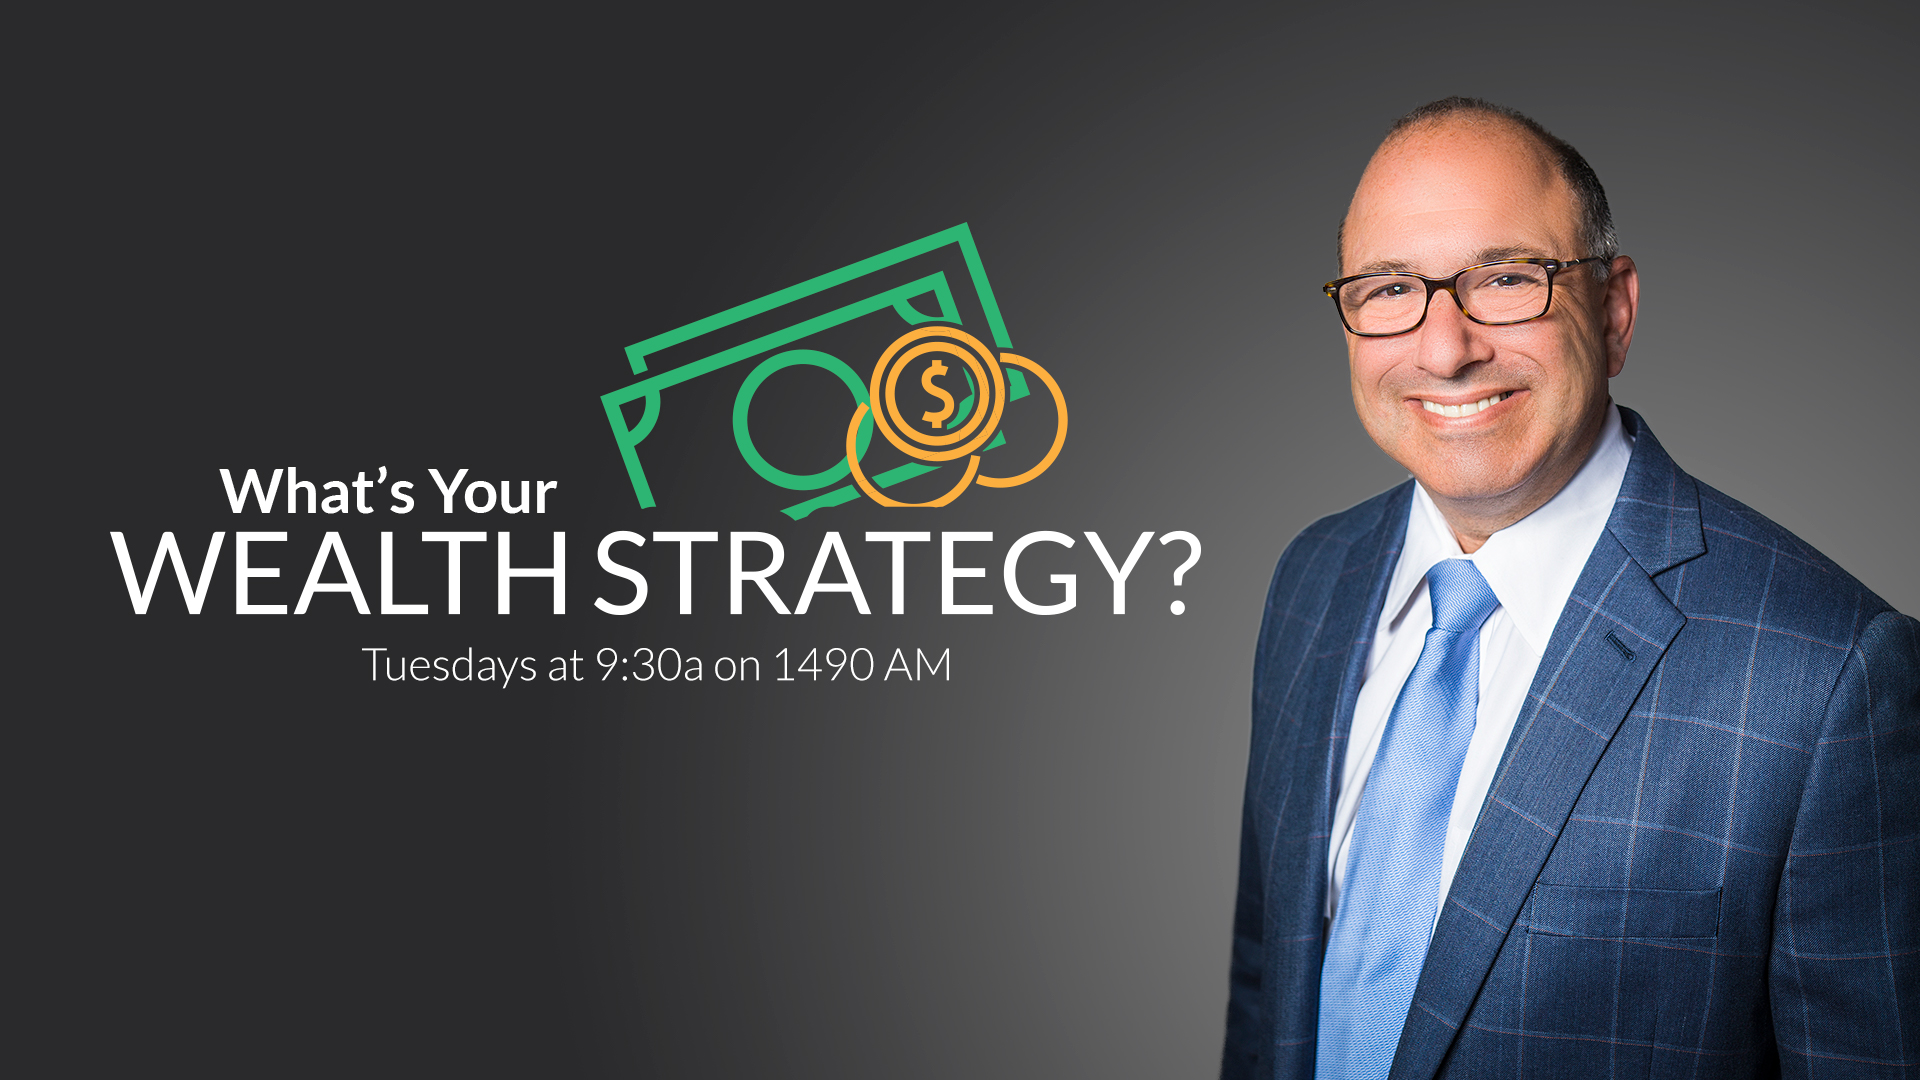 Whats Your Wealth Strategy with Mark Fried